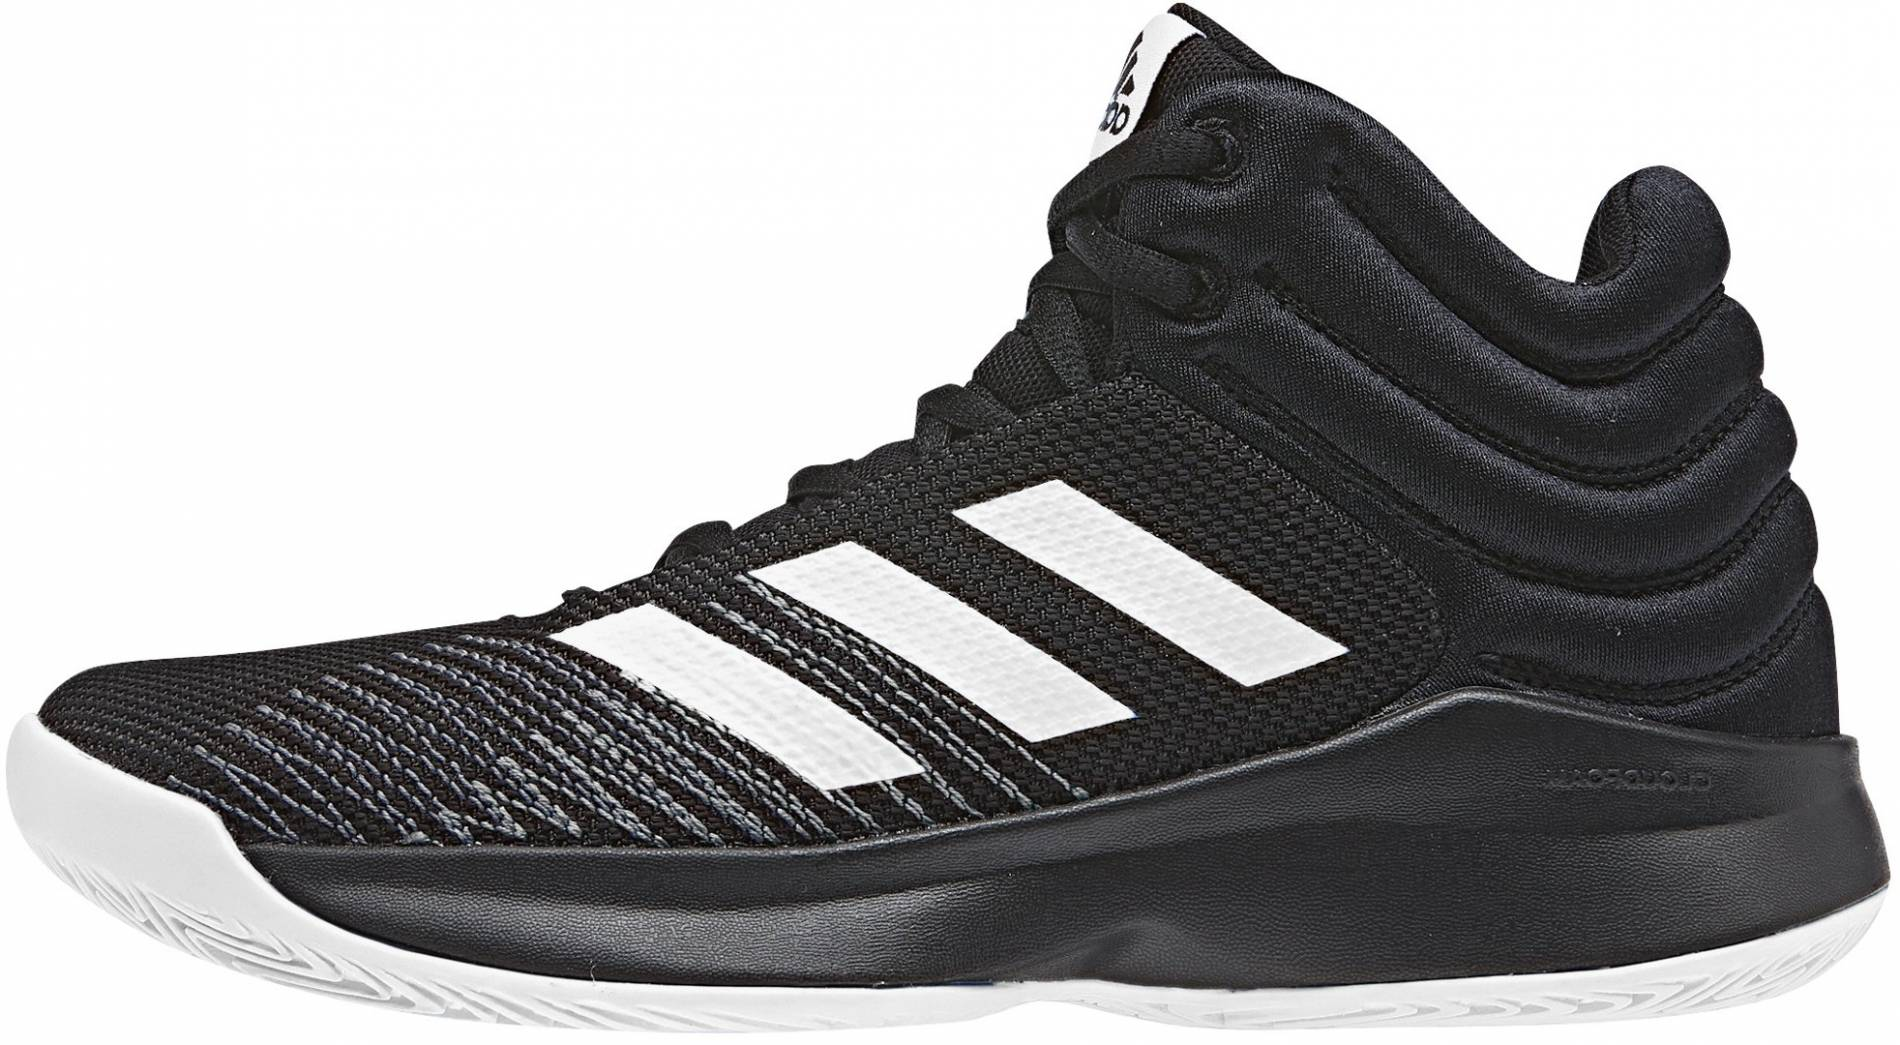 nadie realidad Insatisfactorio  Adidas Pro Spark 2018 - Deals, Facts, Reviews (2021) | RunRepeat